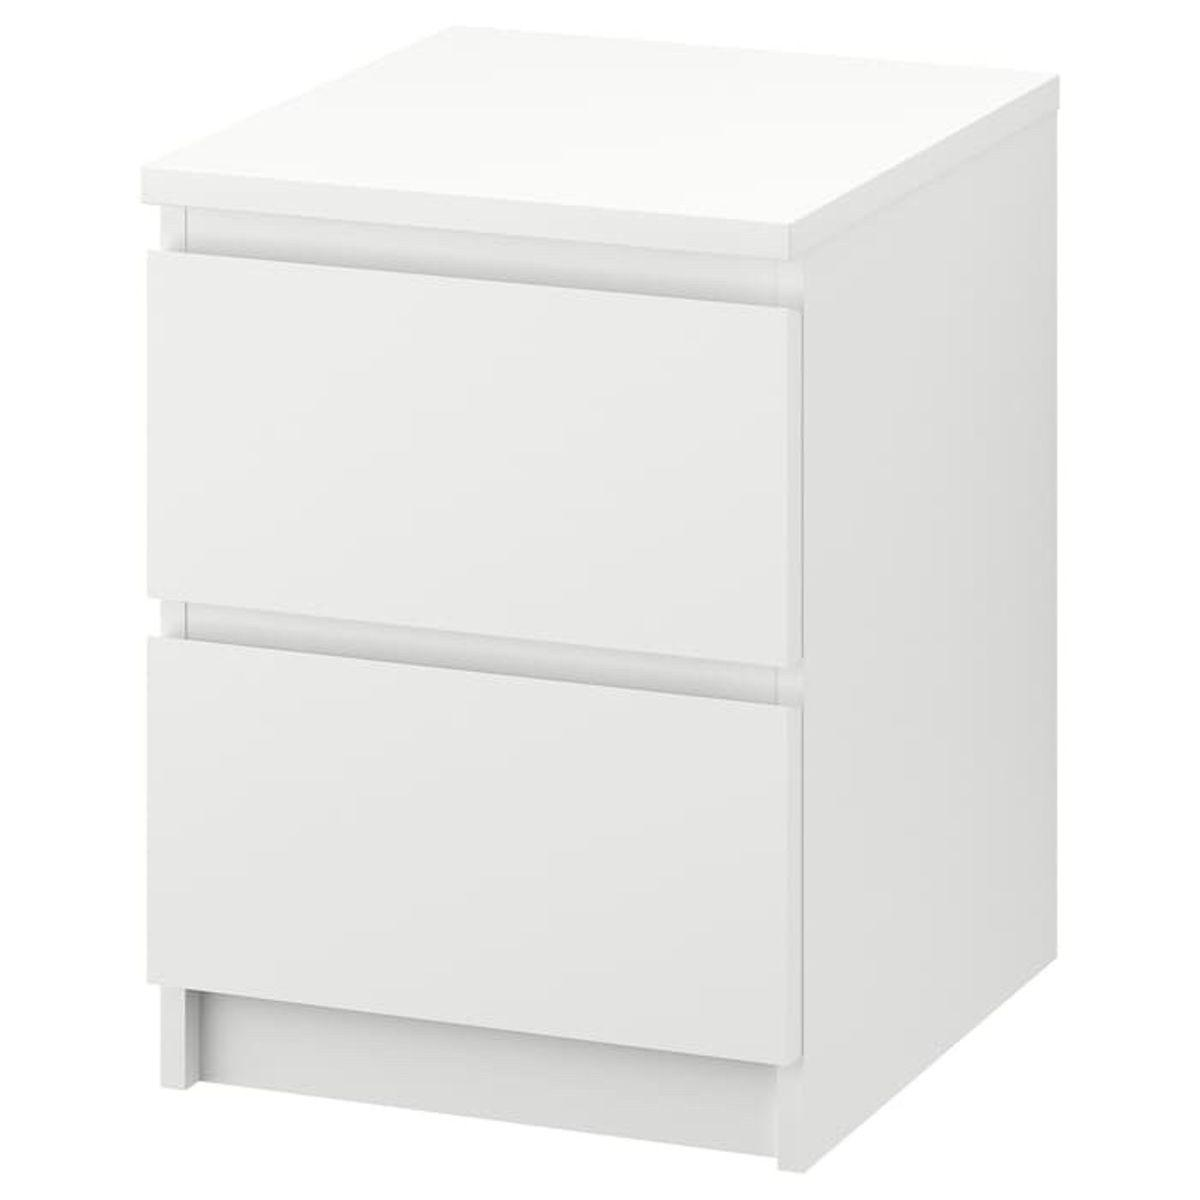 Ikea Bedside Table Very Good Condition In Cr5 London For 15 00 For Sale Shpock